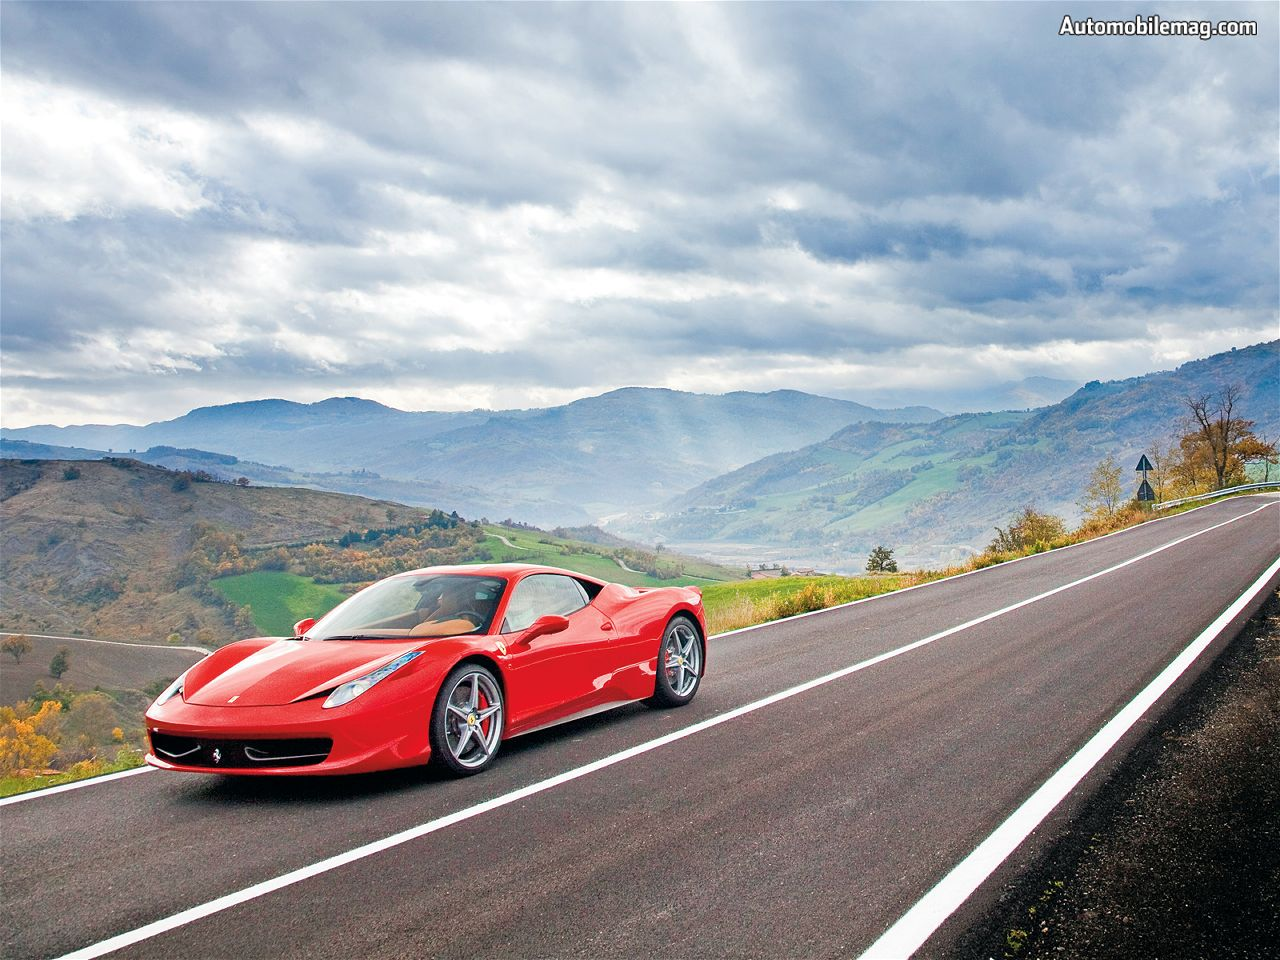 Ferrari road cars are Used as a symbol of luxury and wealth.